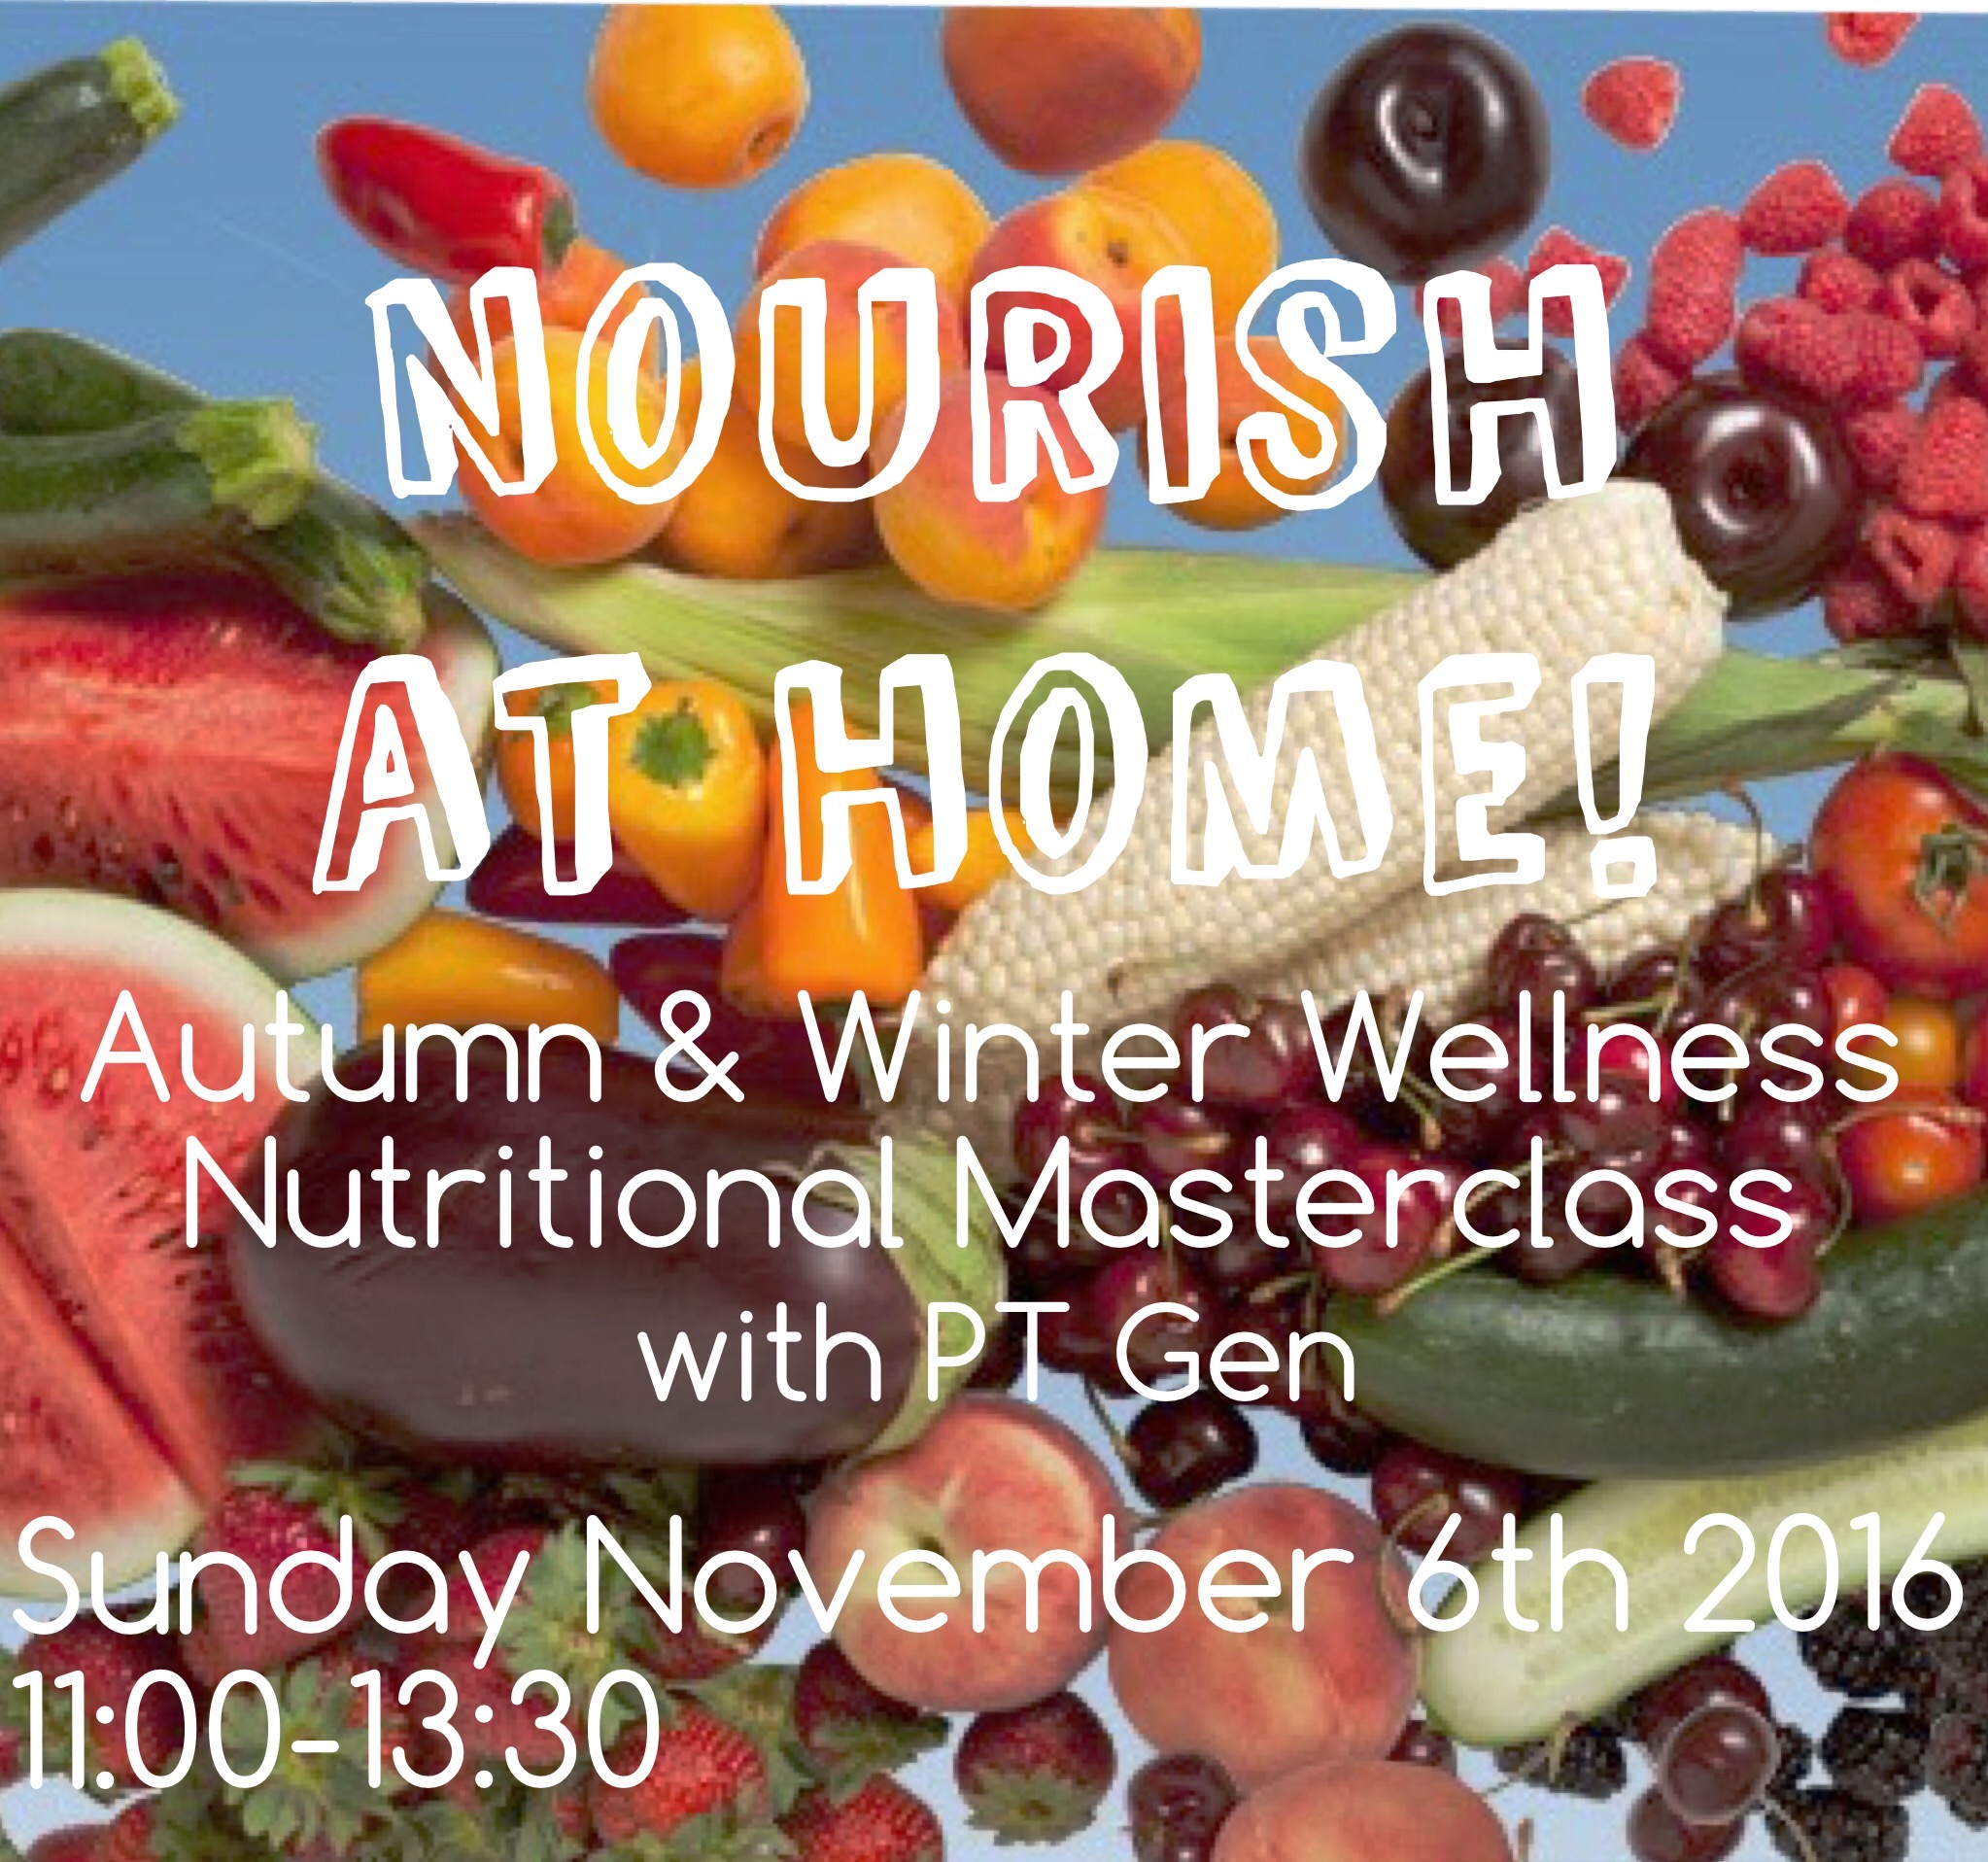 Get ready to Nourish like never before!